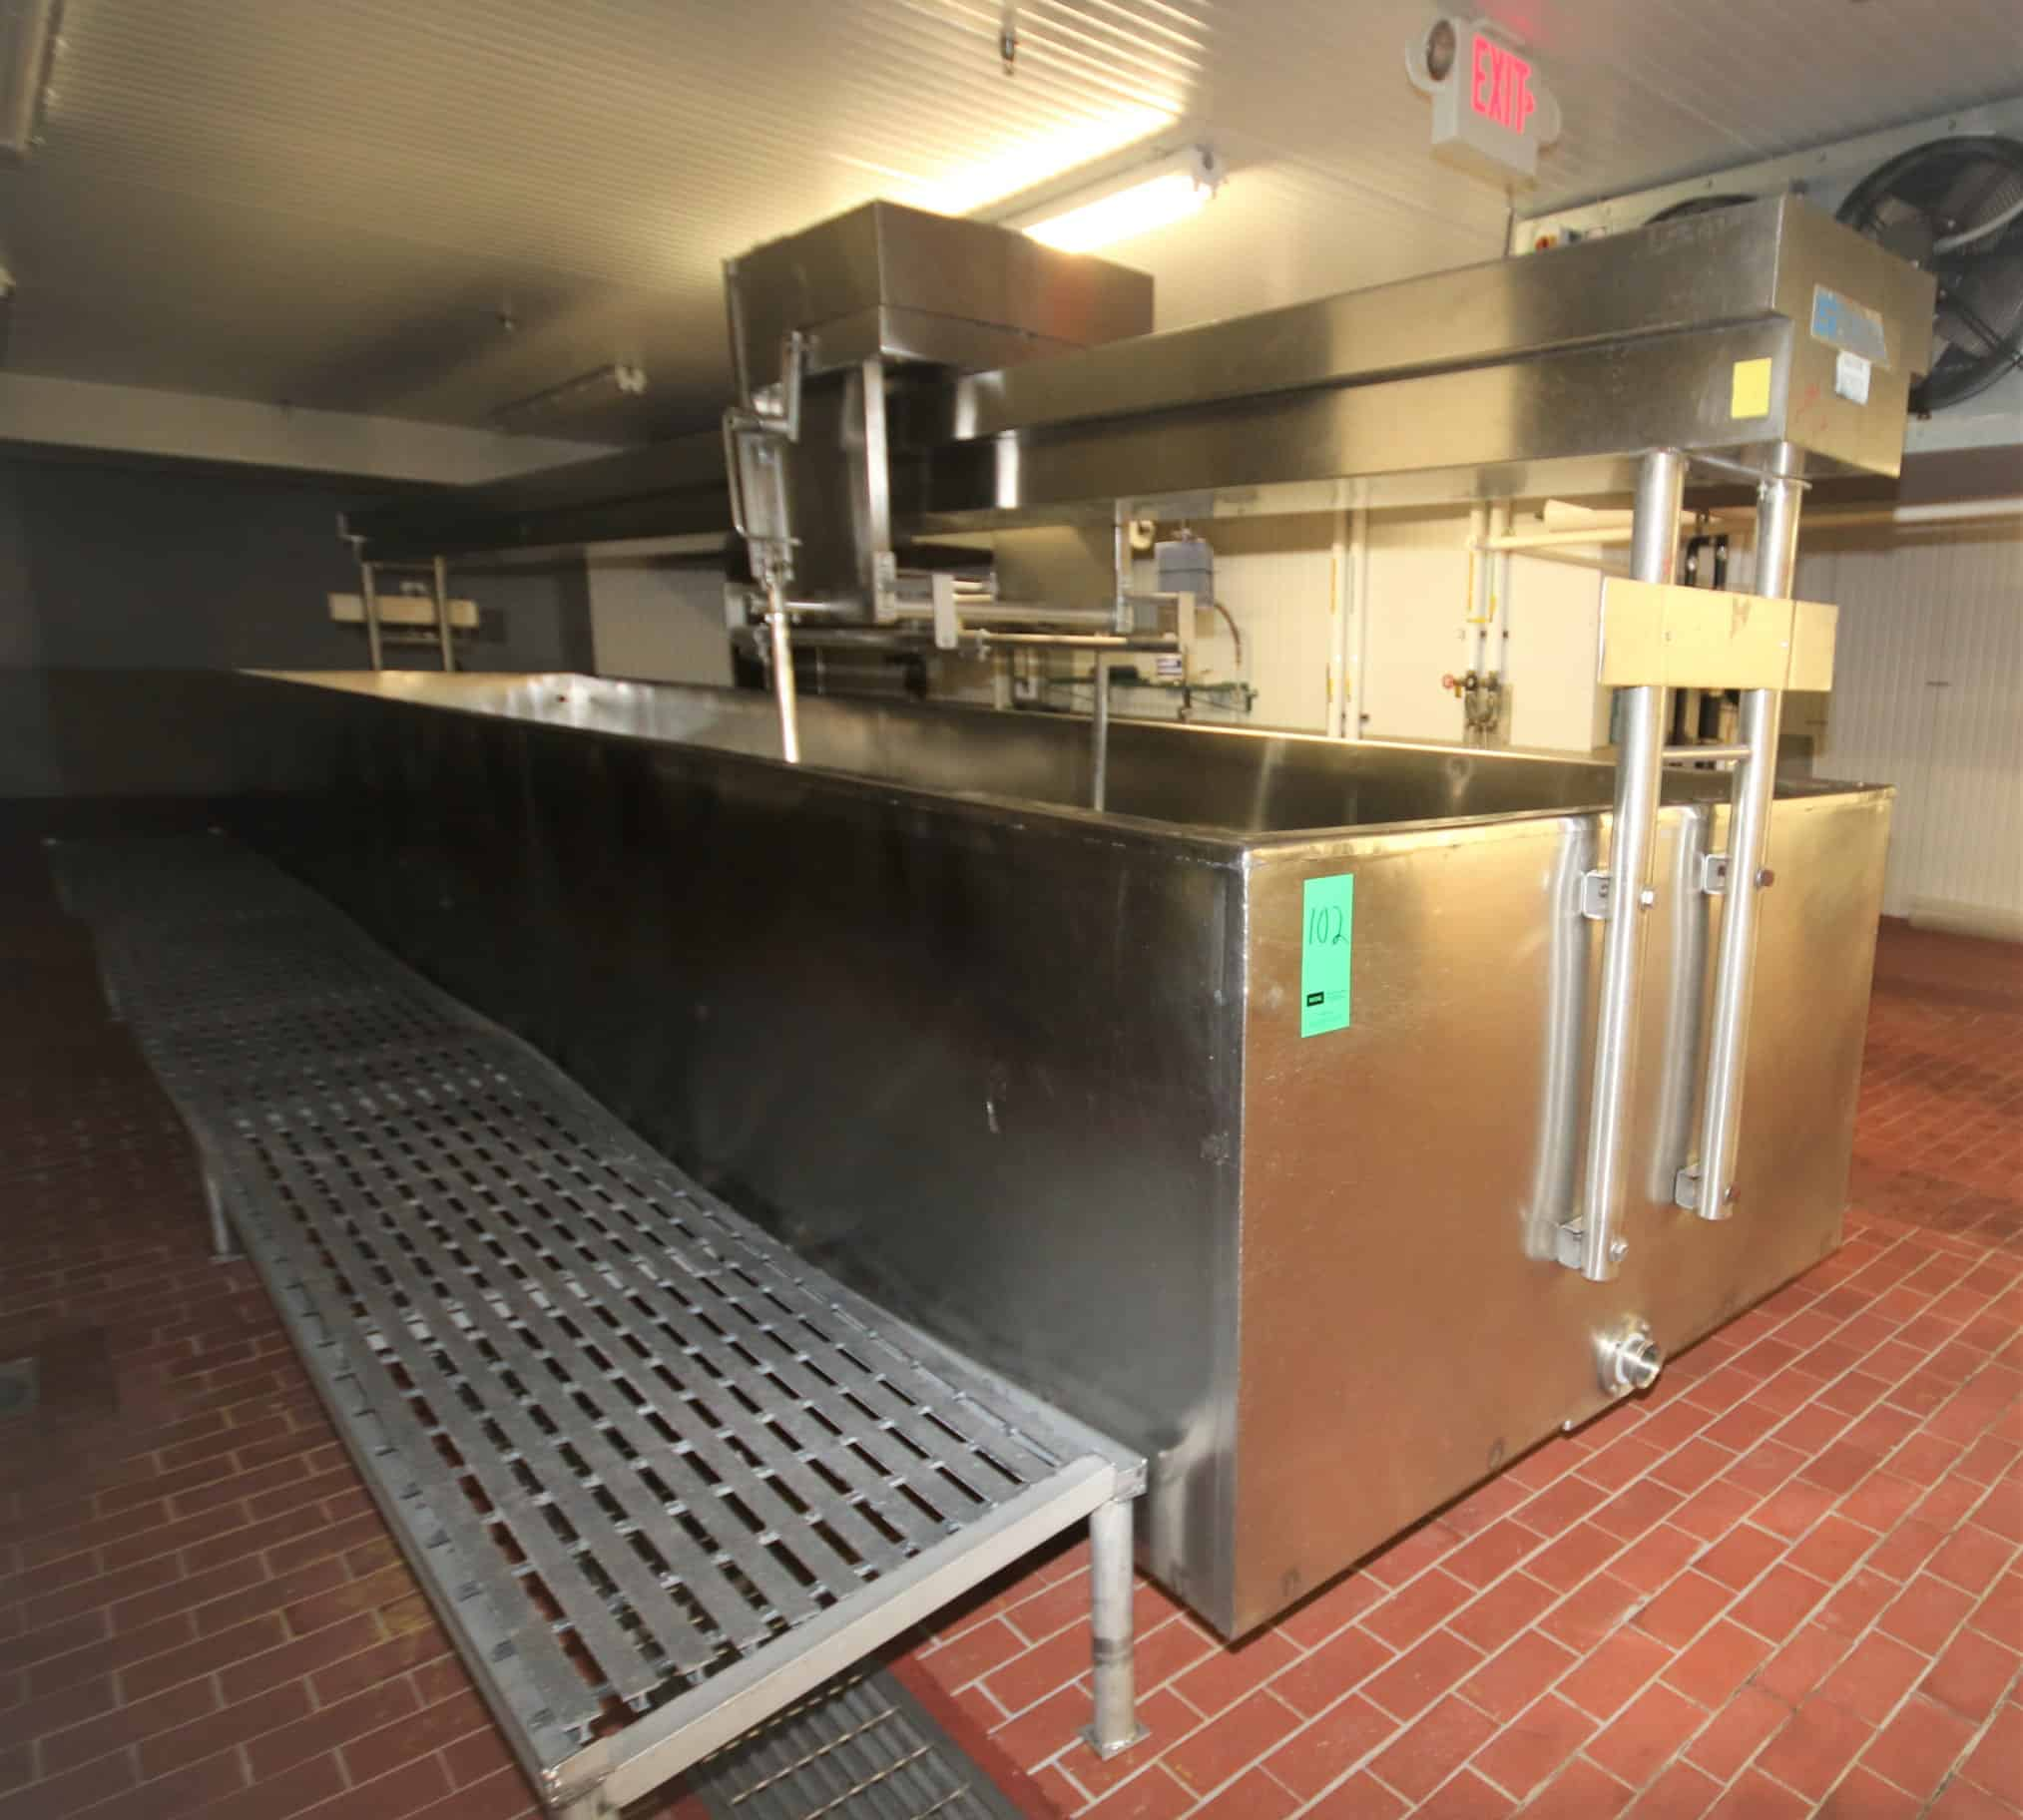 "Stoelting ~4,000 Gal. Open Top Jacketed S/S Cheese Vat, Model VERTISTIR, S/N 338-045-59-3500-83 with Overhead Bridge Agitation, Agitator Blades, Valves and Controls, Vat Dimensions ~30 ft. L x 6 ft. W x 36"" H"